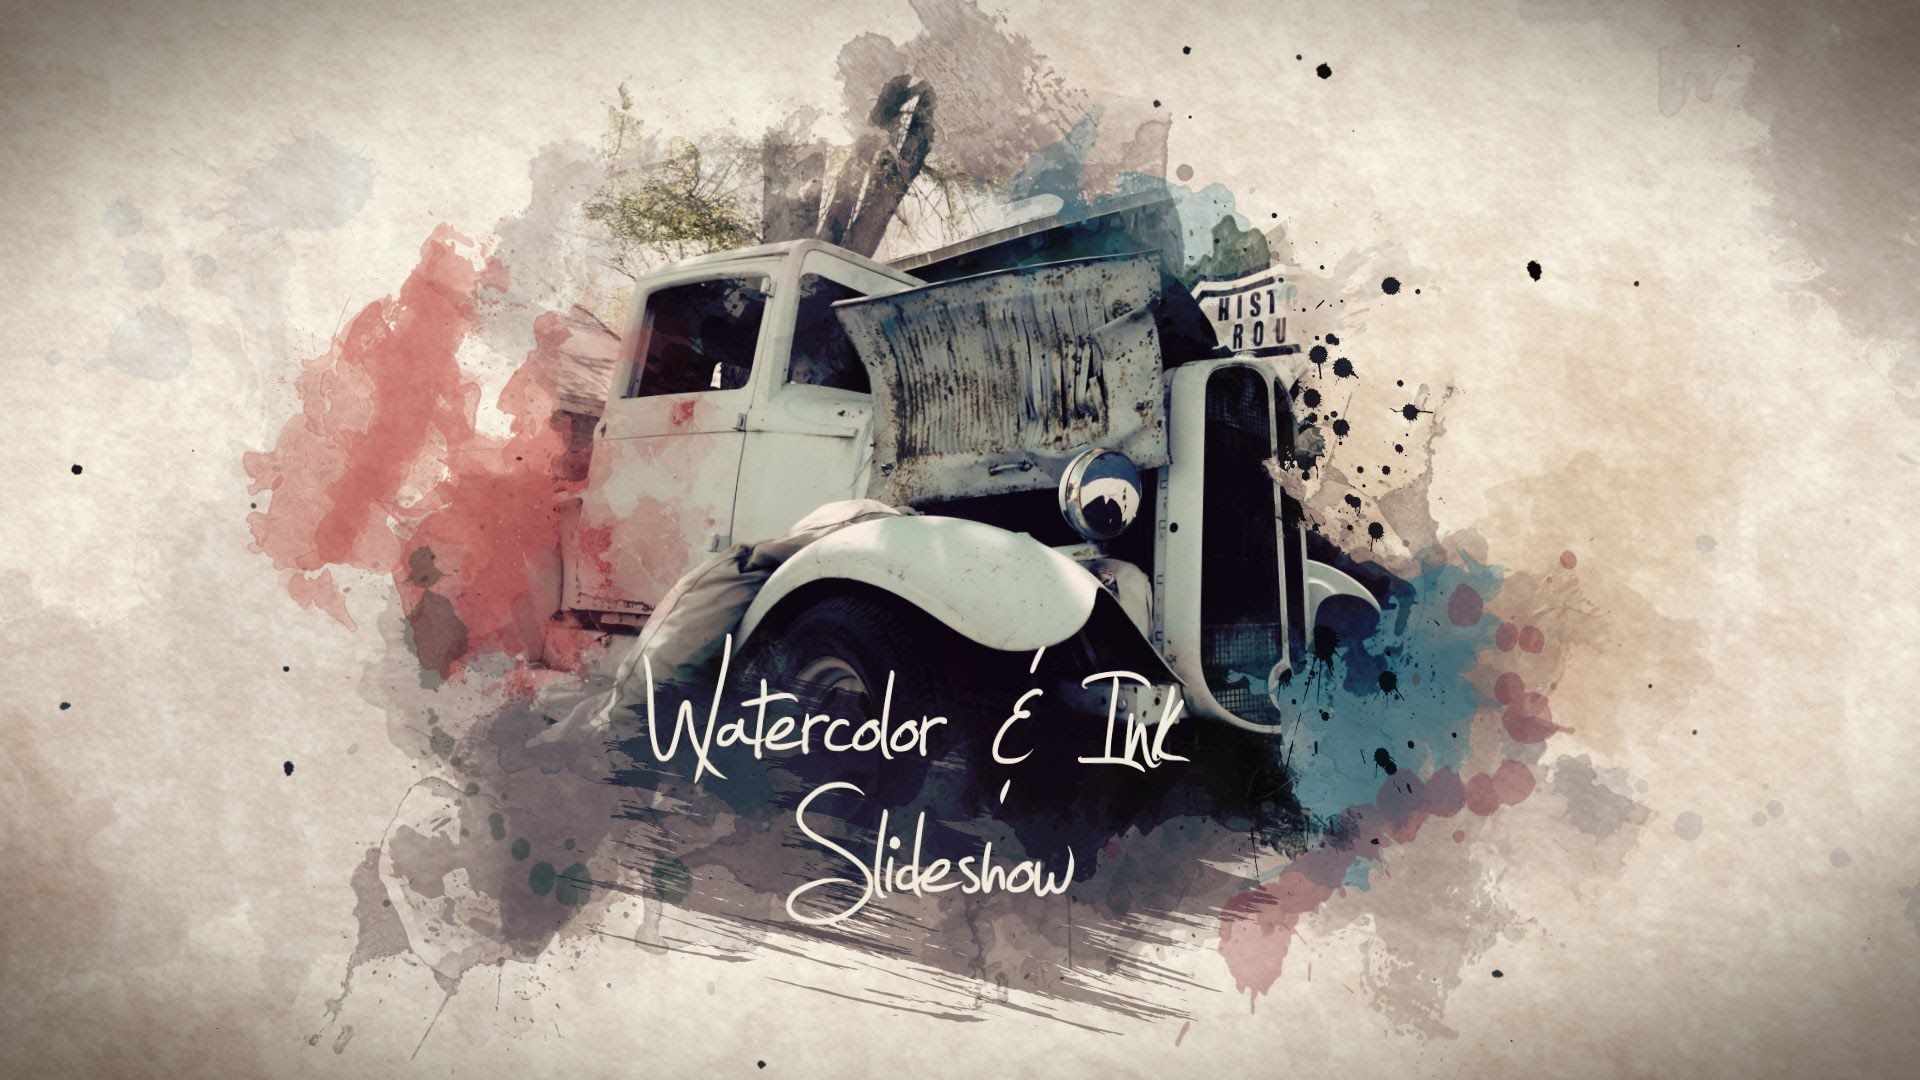 Stage lighting in after effects cs4 youtube - After Effects Template Watercolor Ink Slideshow